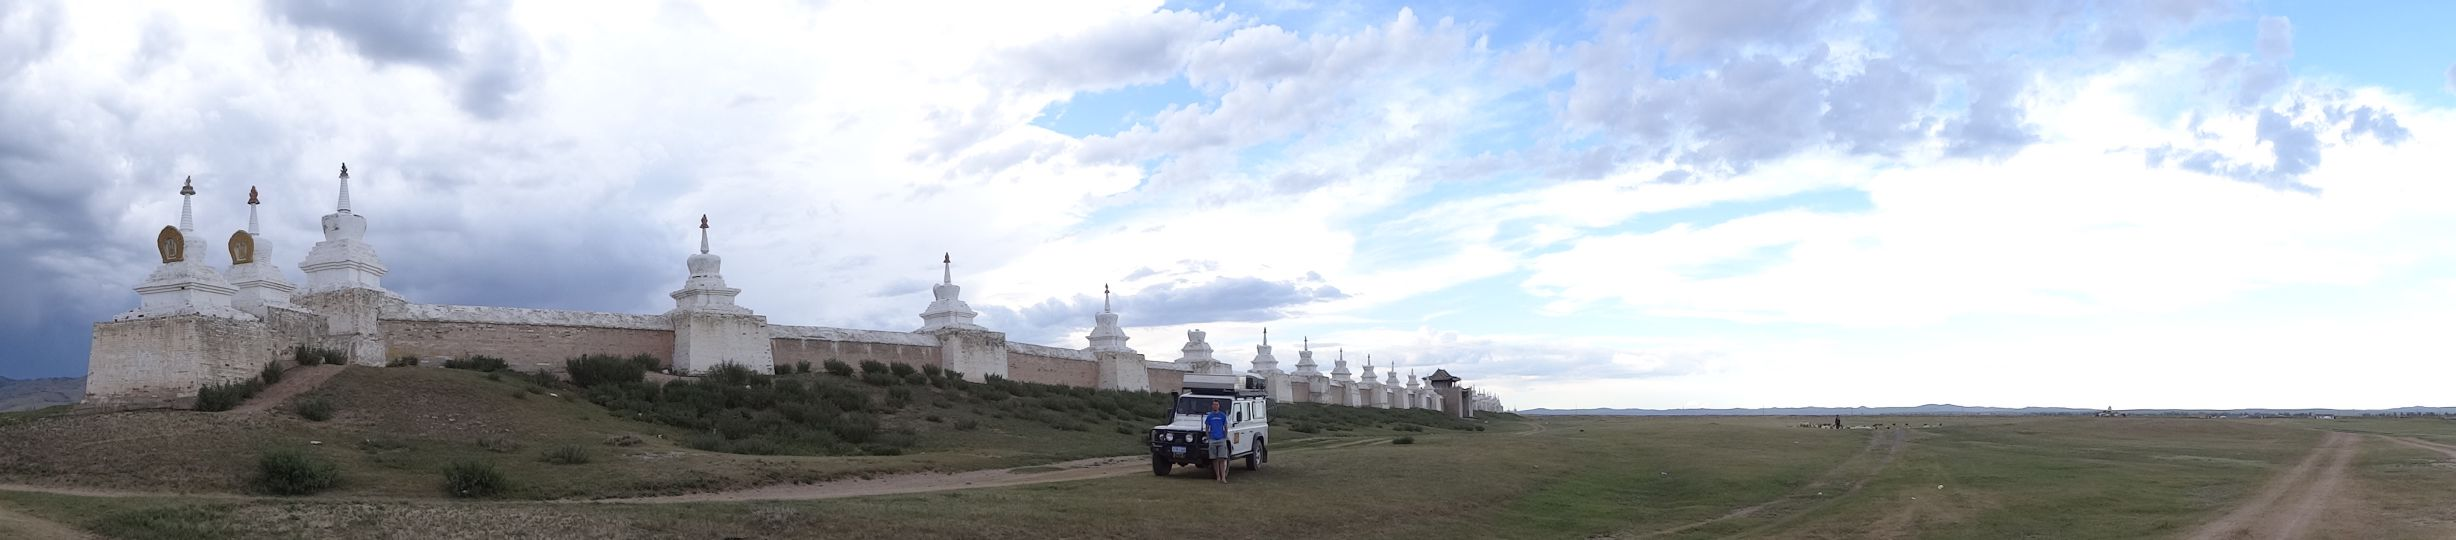 Mongolia's first Buddhist Monastery and our camp site in Karakoram